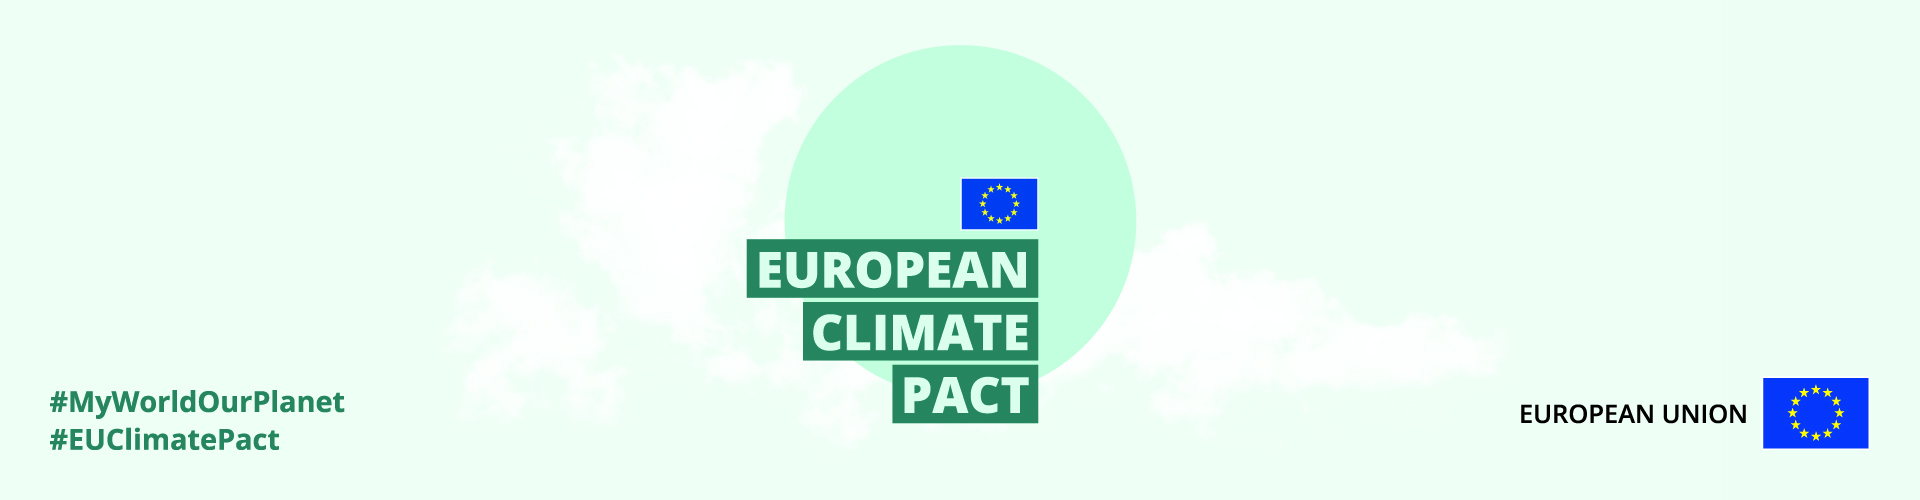 The European Climate Pact